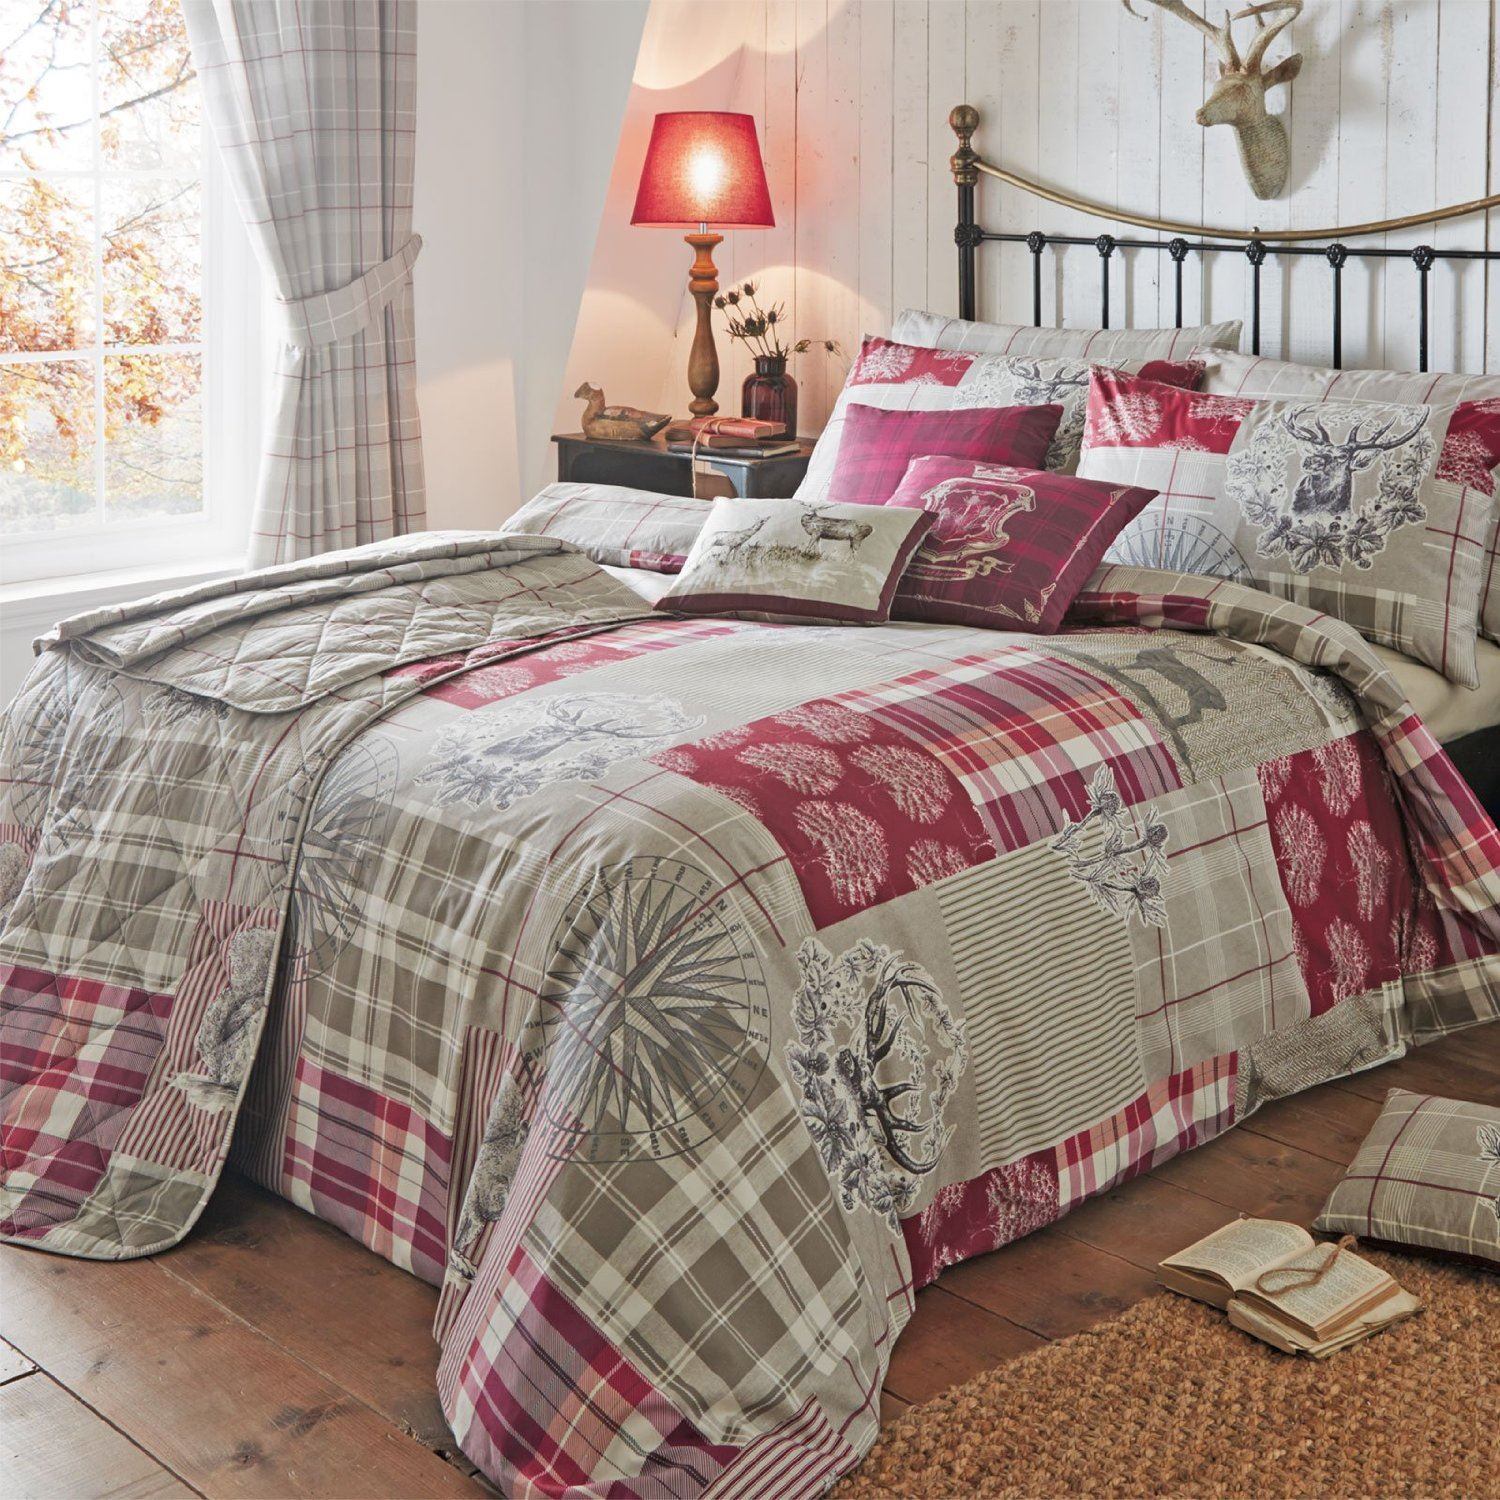 Bed sheets designs patchwork - Tatton Patchwork Duvet Quilt Cover Bedding Red Heather